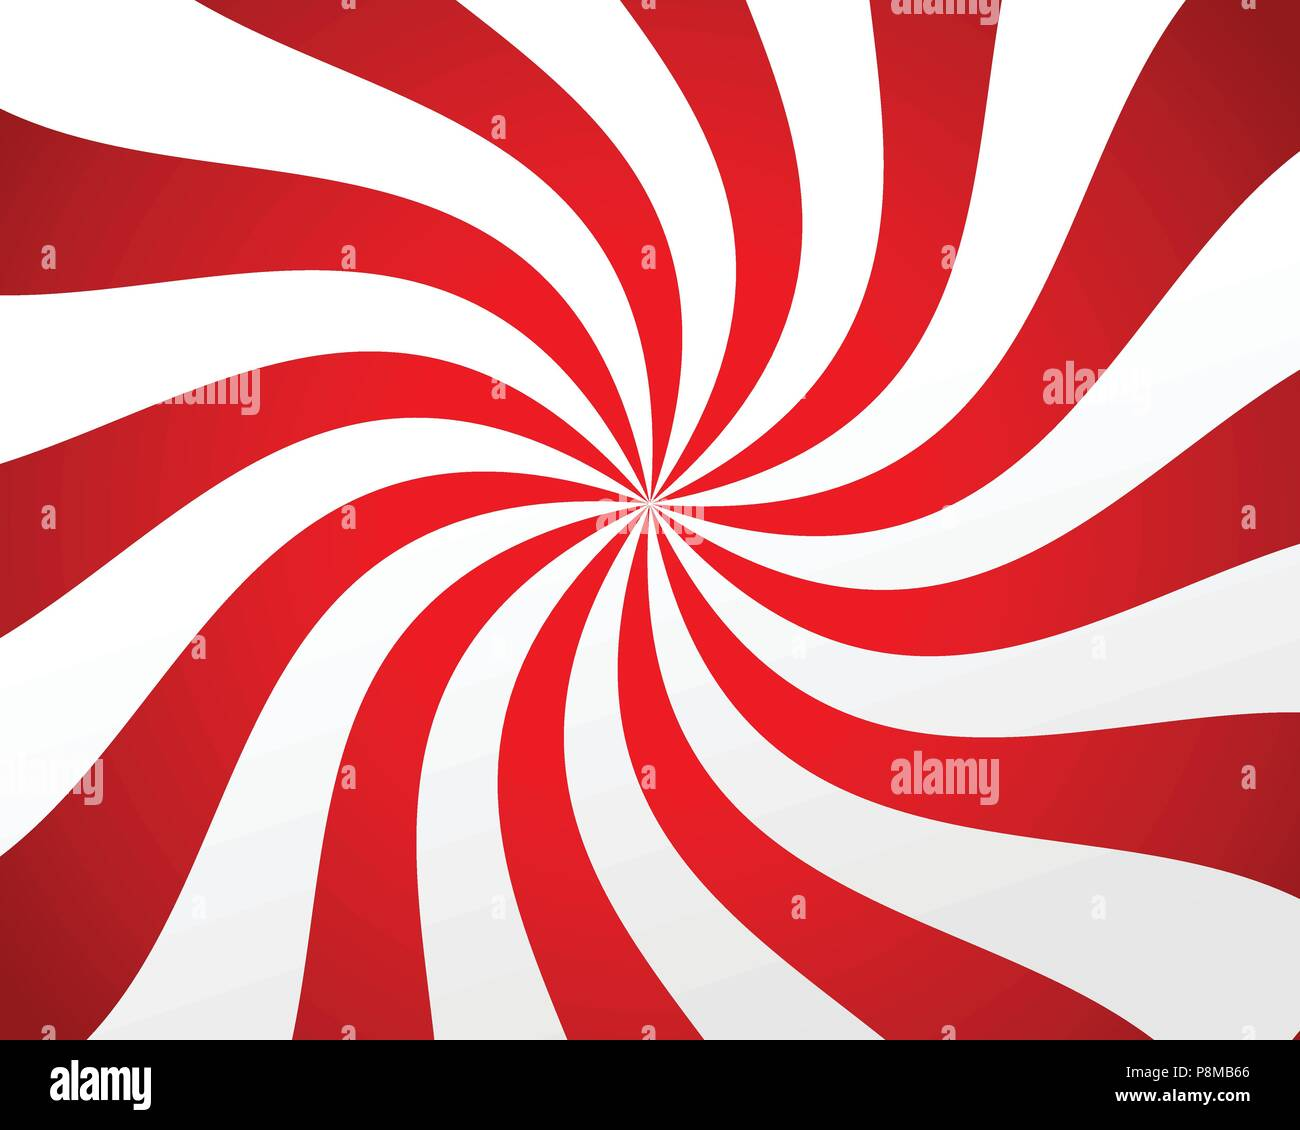 lollipop spiral vector graphic background design template stock